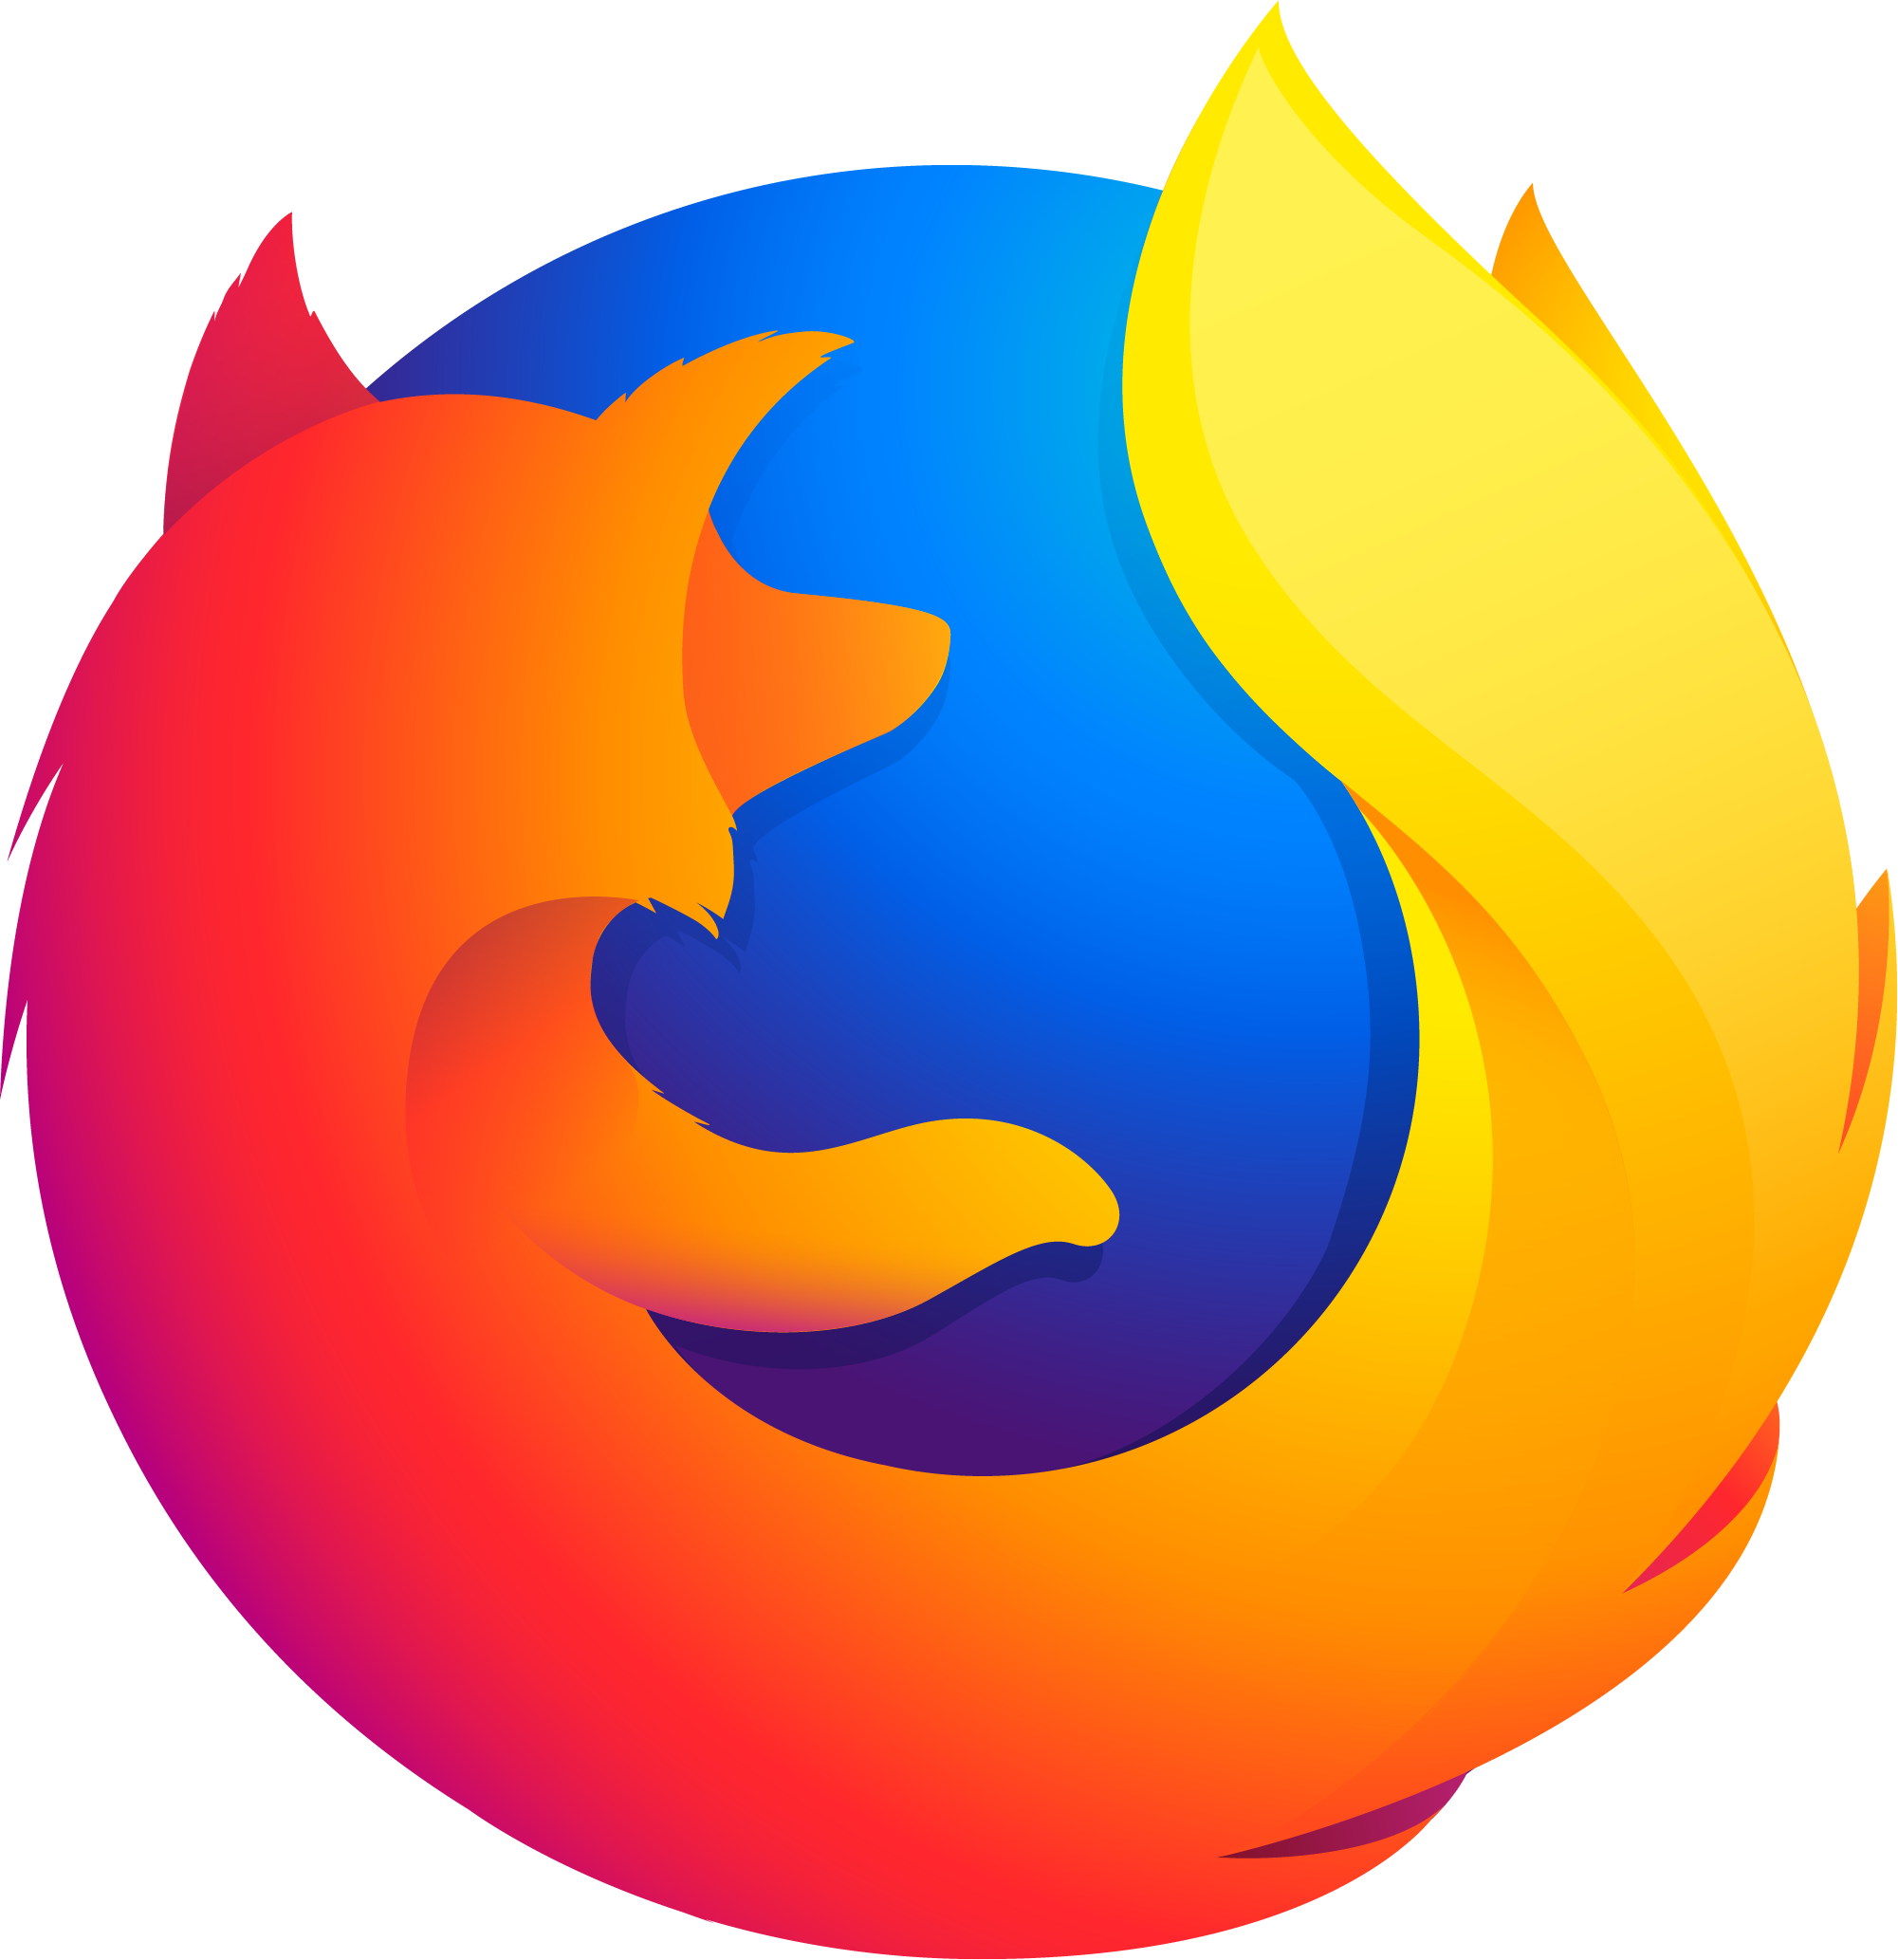 Ícone do Firefox